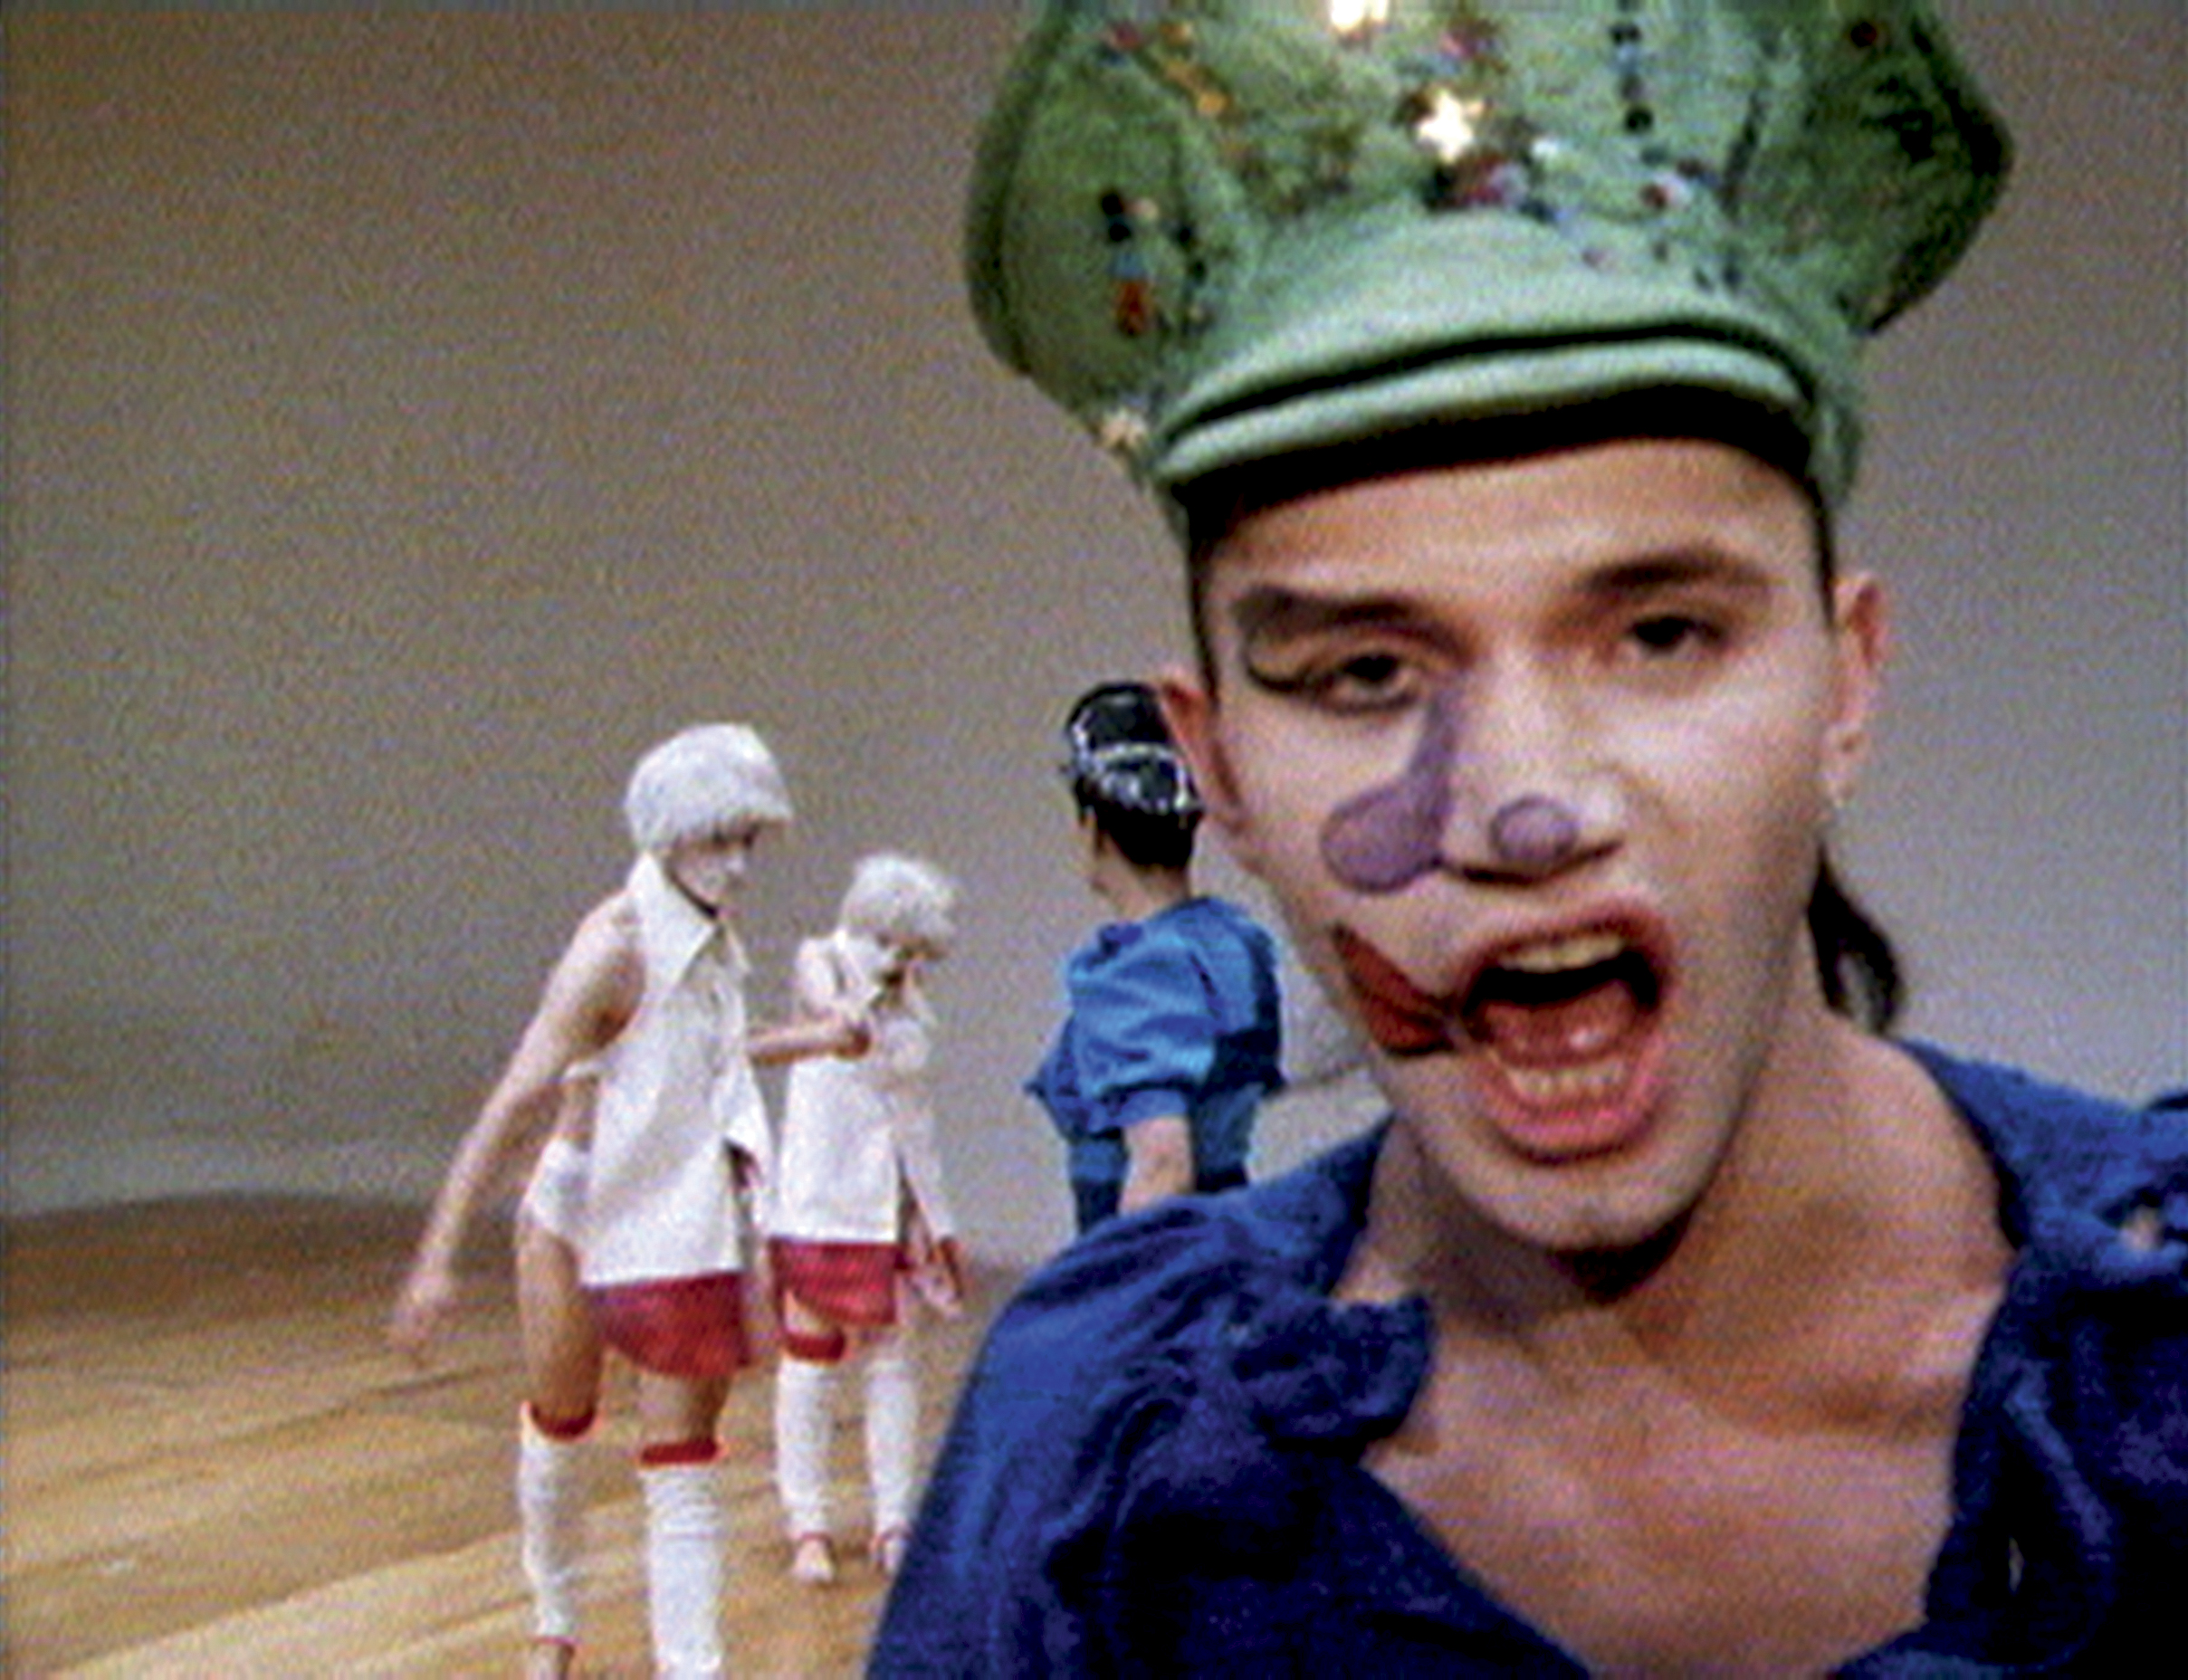 Michael Clark in Charles Atlas's Hail the New Puritan, 1986 Still, 16mm film transferred to video, sound, duration: 84:54 minutes. © Charles Atlas, courtesy the artist and Luhring Augustine, New York